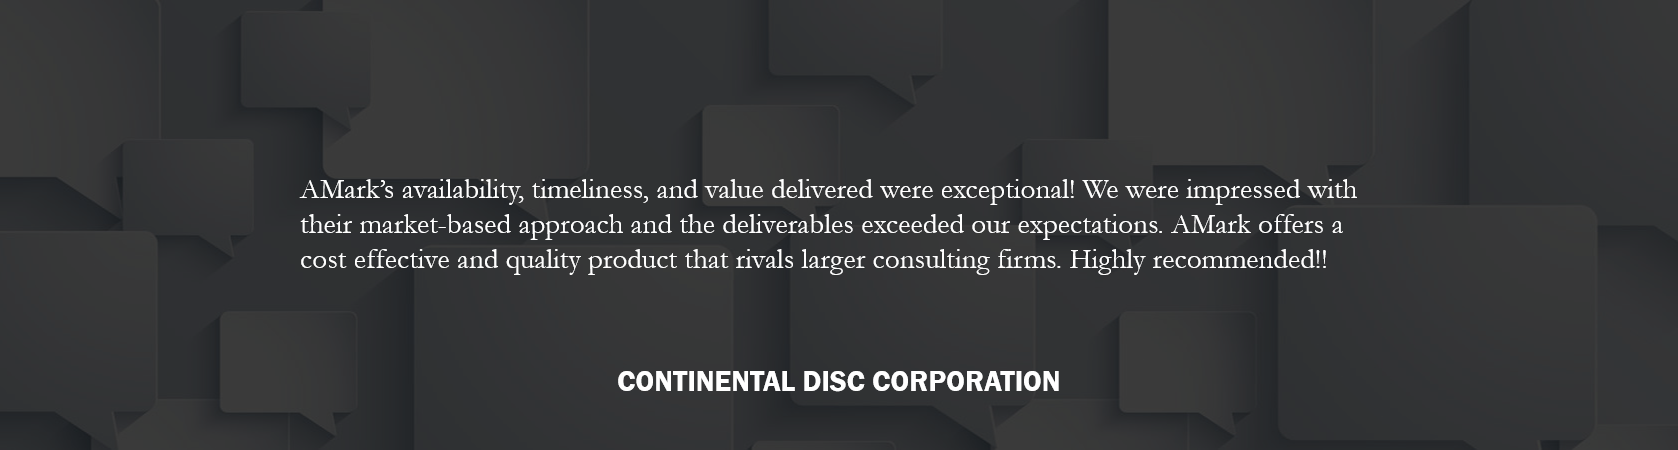 continental disc corp.png